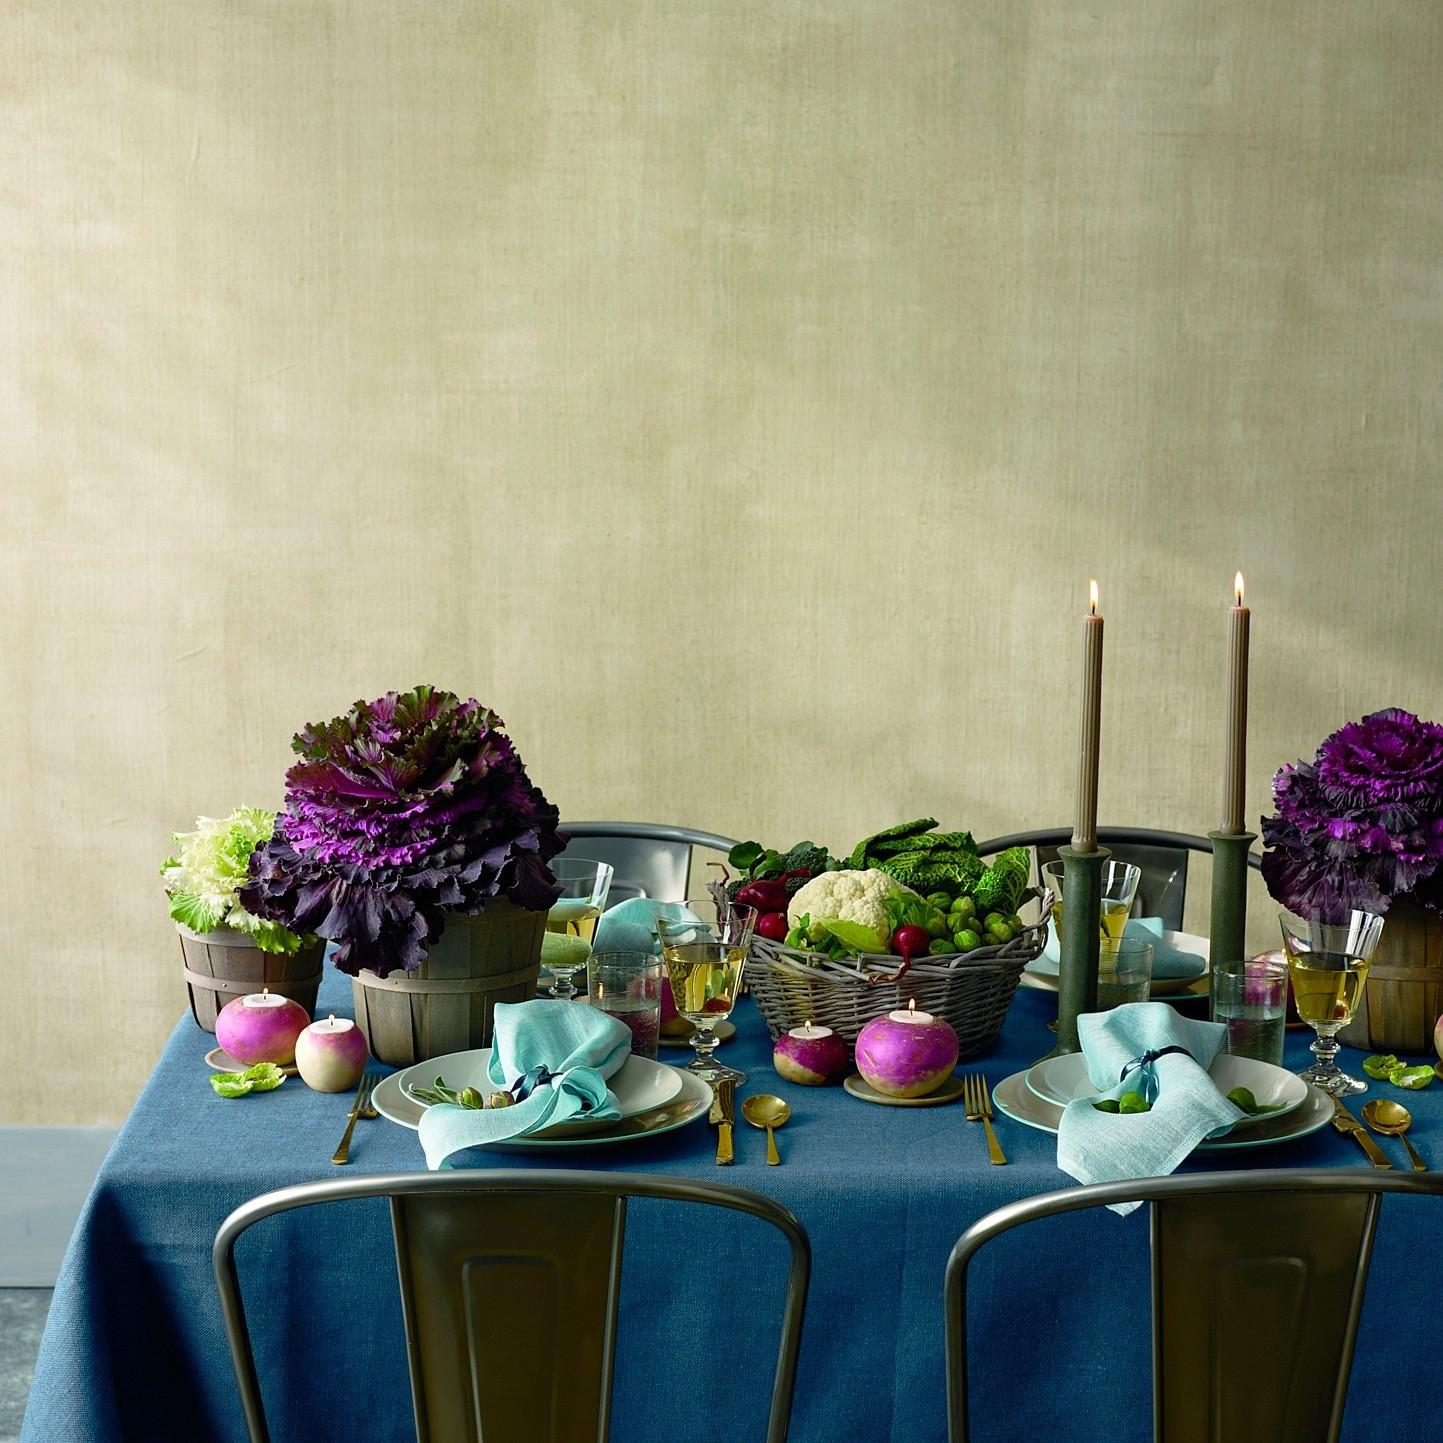 Elegant Outdoor Dinner Party Table Setting Ideas